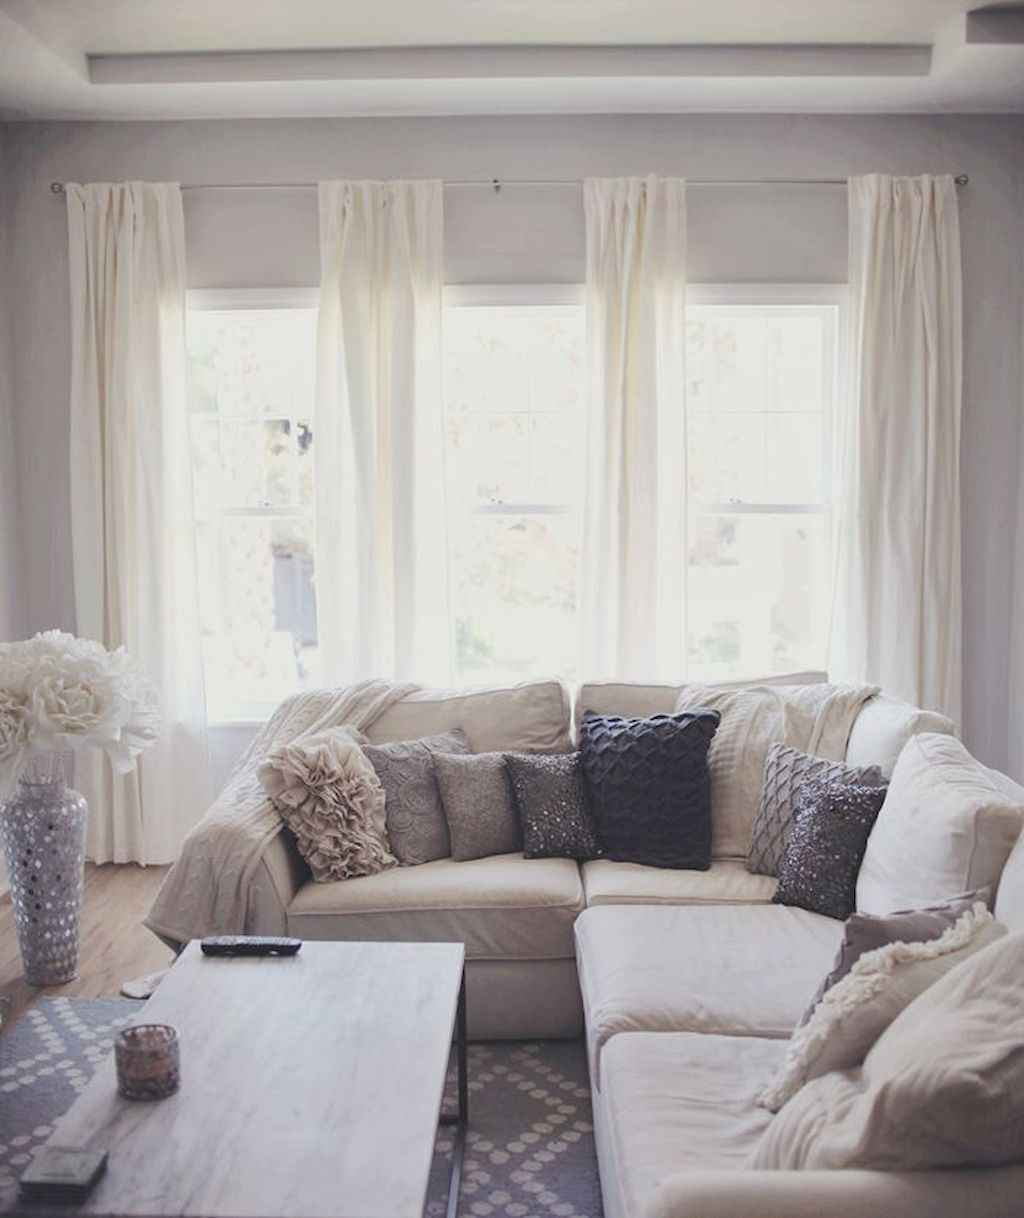 Cozy apartment decorating ideas on a budget (31)